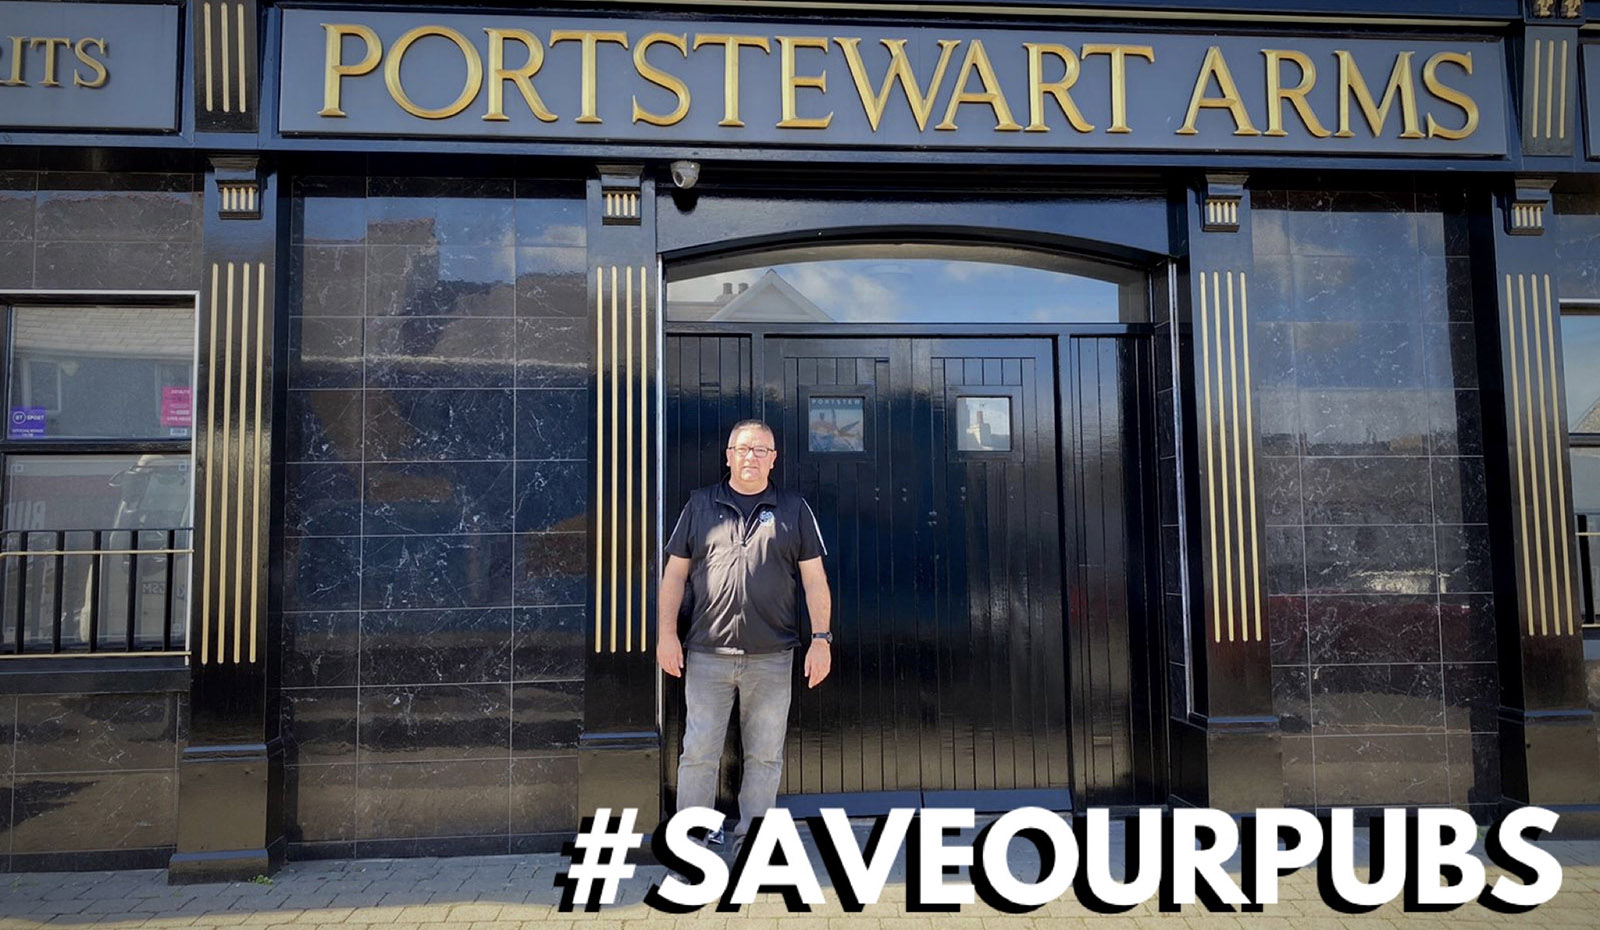 SAVEOURPUBS - The Portstewart Arms